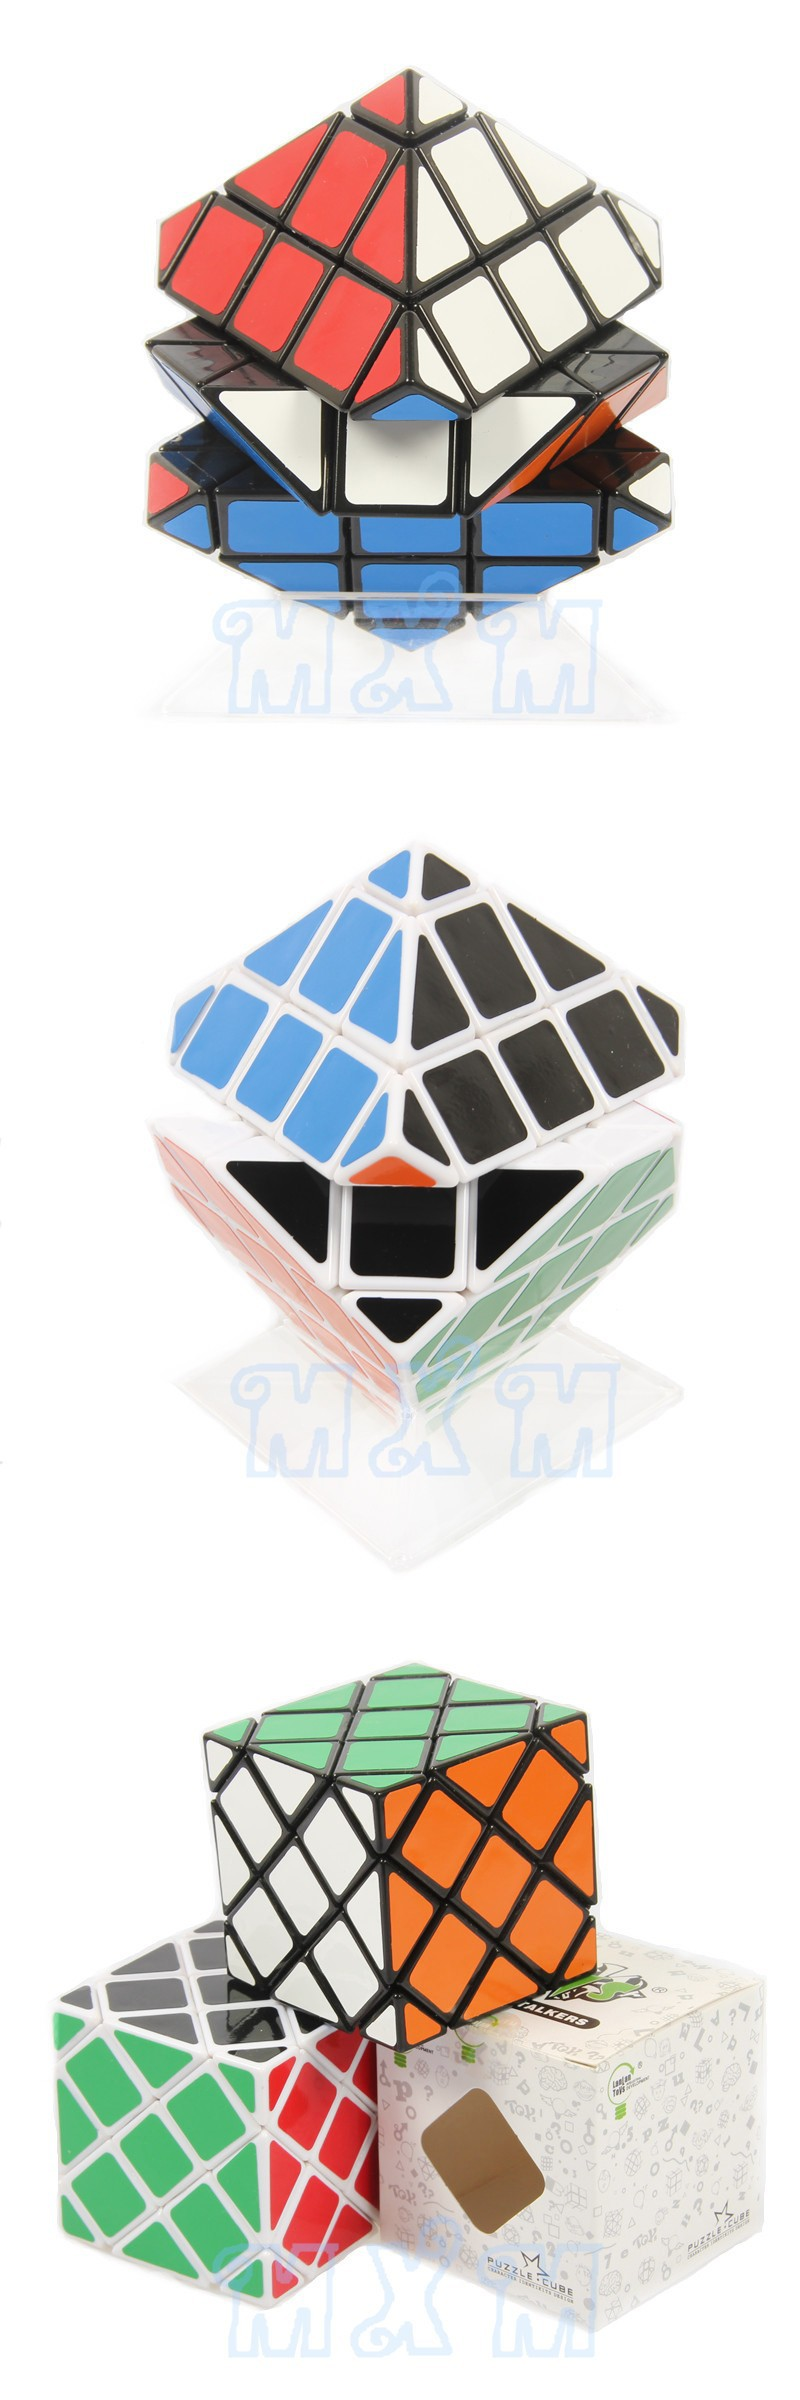 New Unusual-Form LanLan Eight-Axis Grasp Skewb Magic Dice 56mm Velocity Puzzles Twist Sq. Cubo Magico Studying Training Recreation Toy